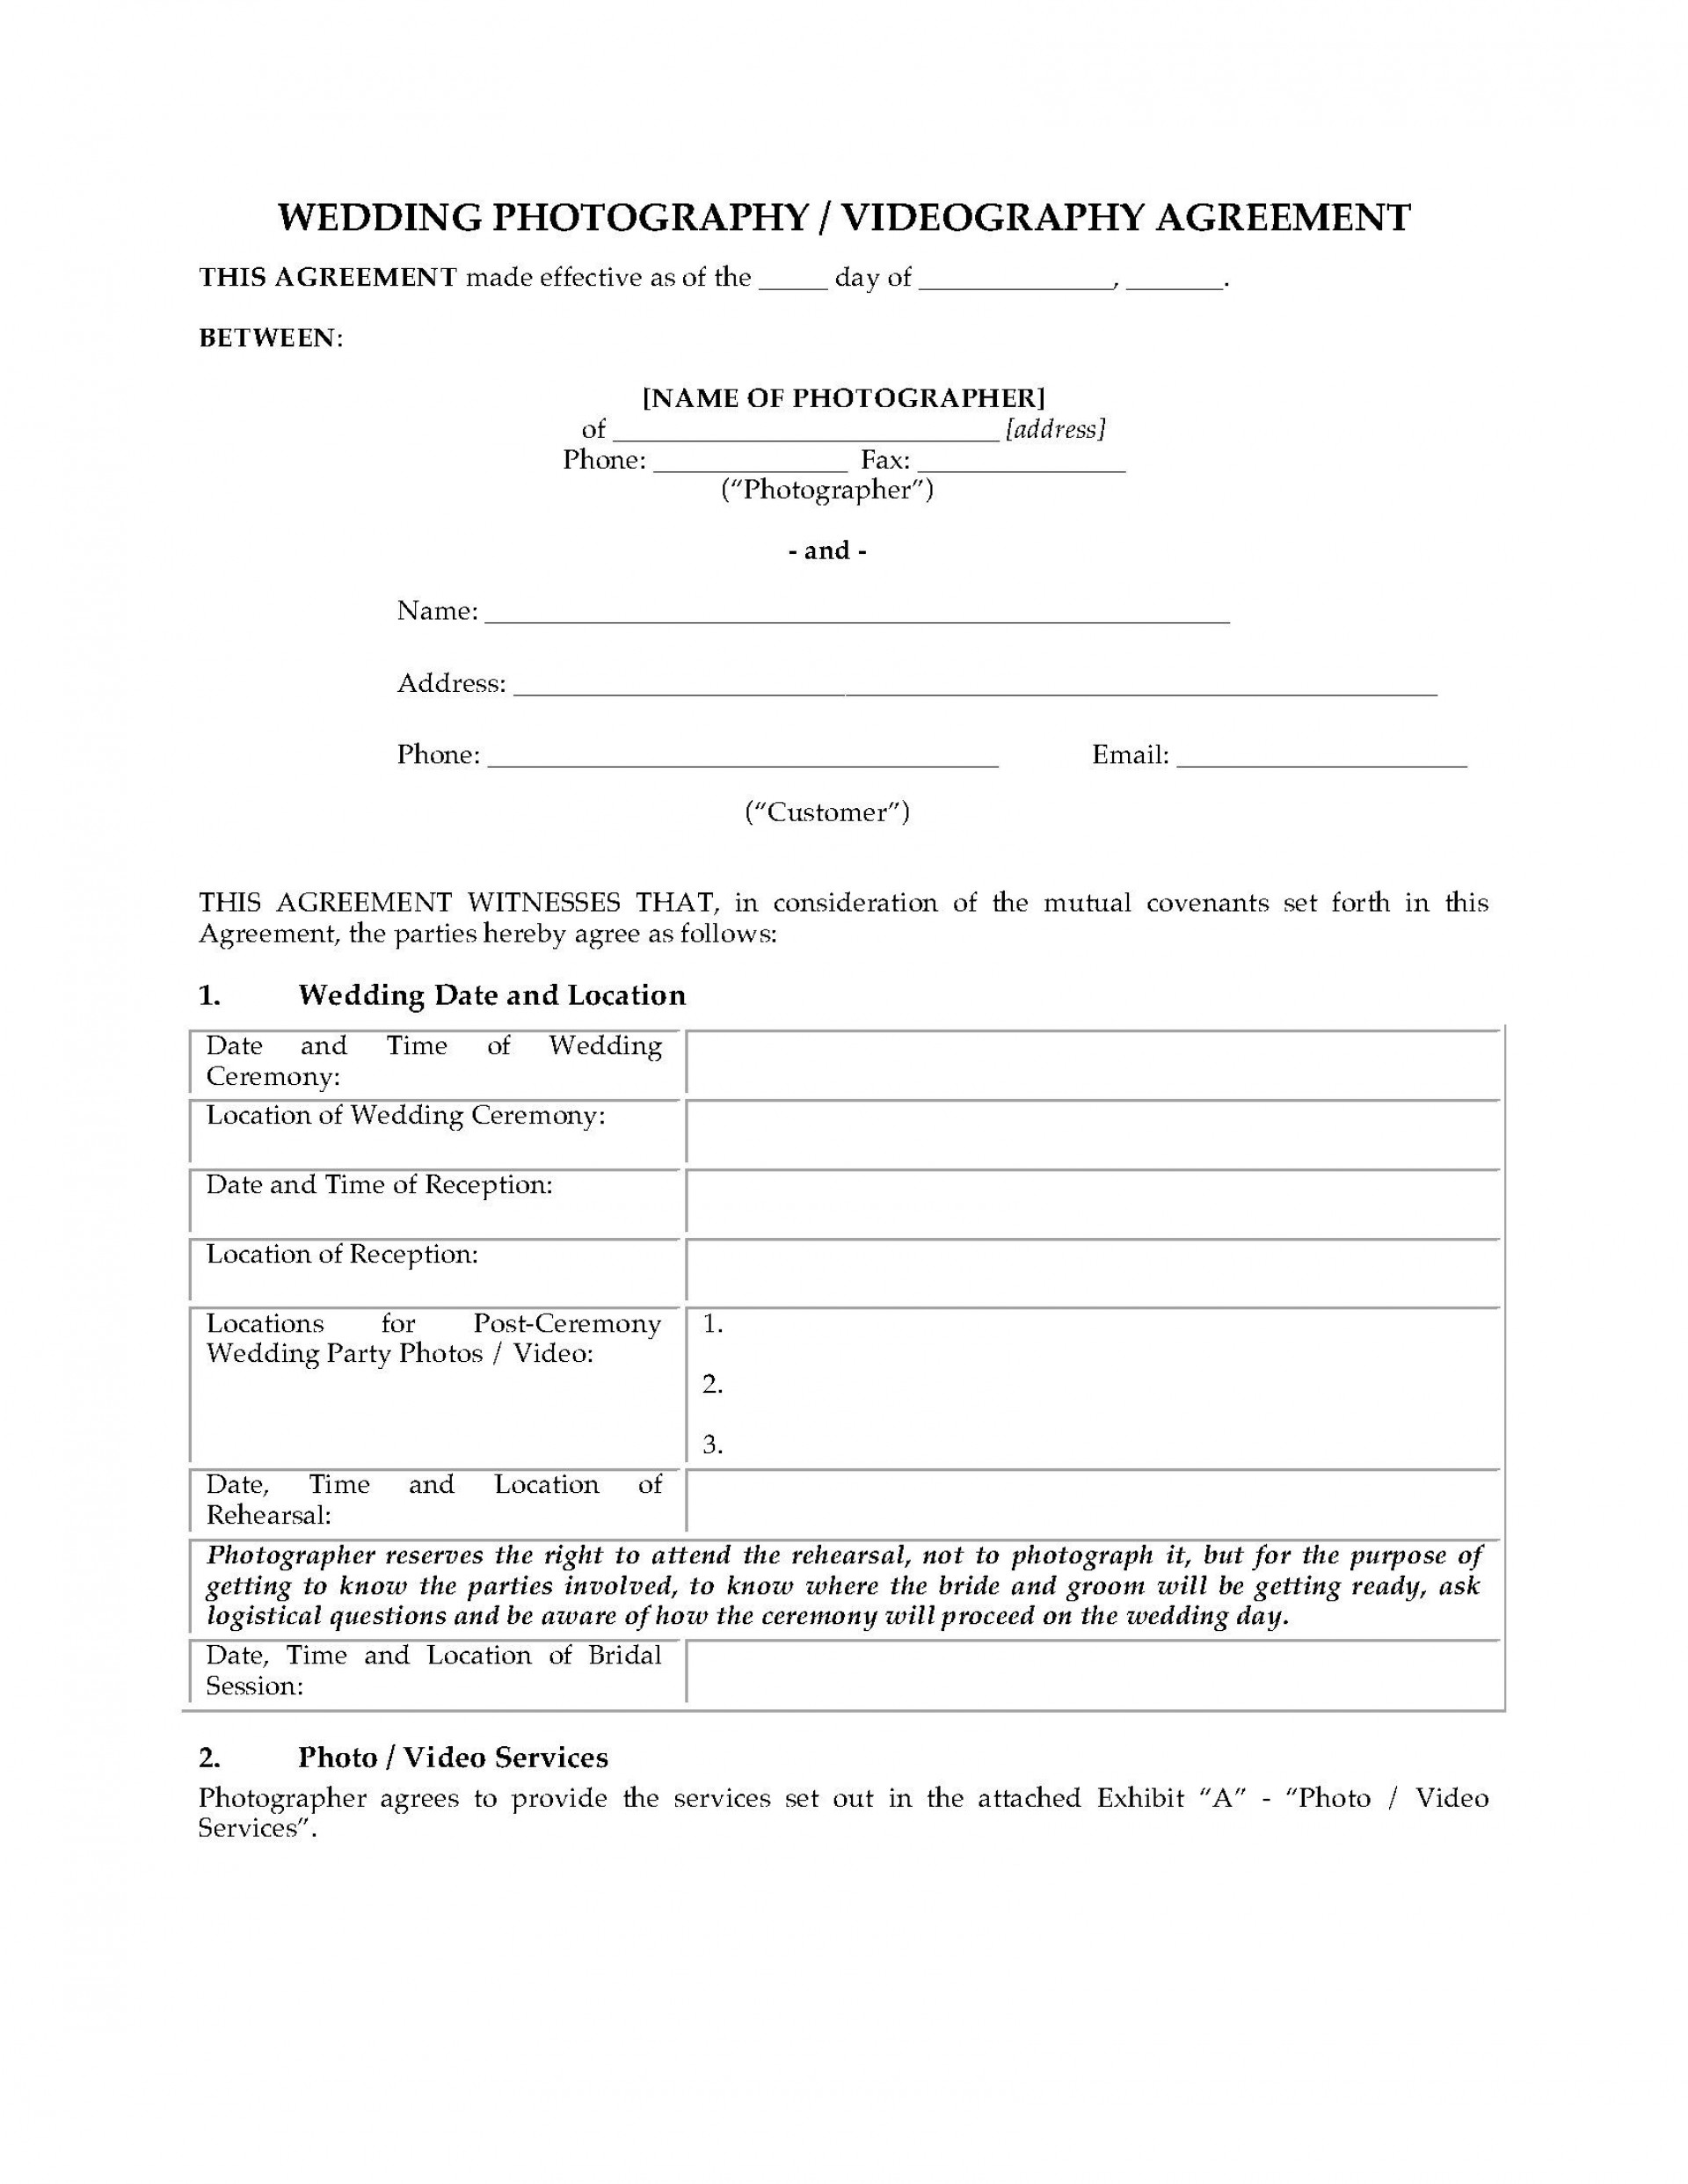 005 Beautiful Wedding Videographer Contract Template Example  Videography Pdf1920